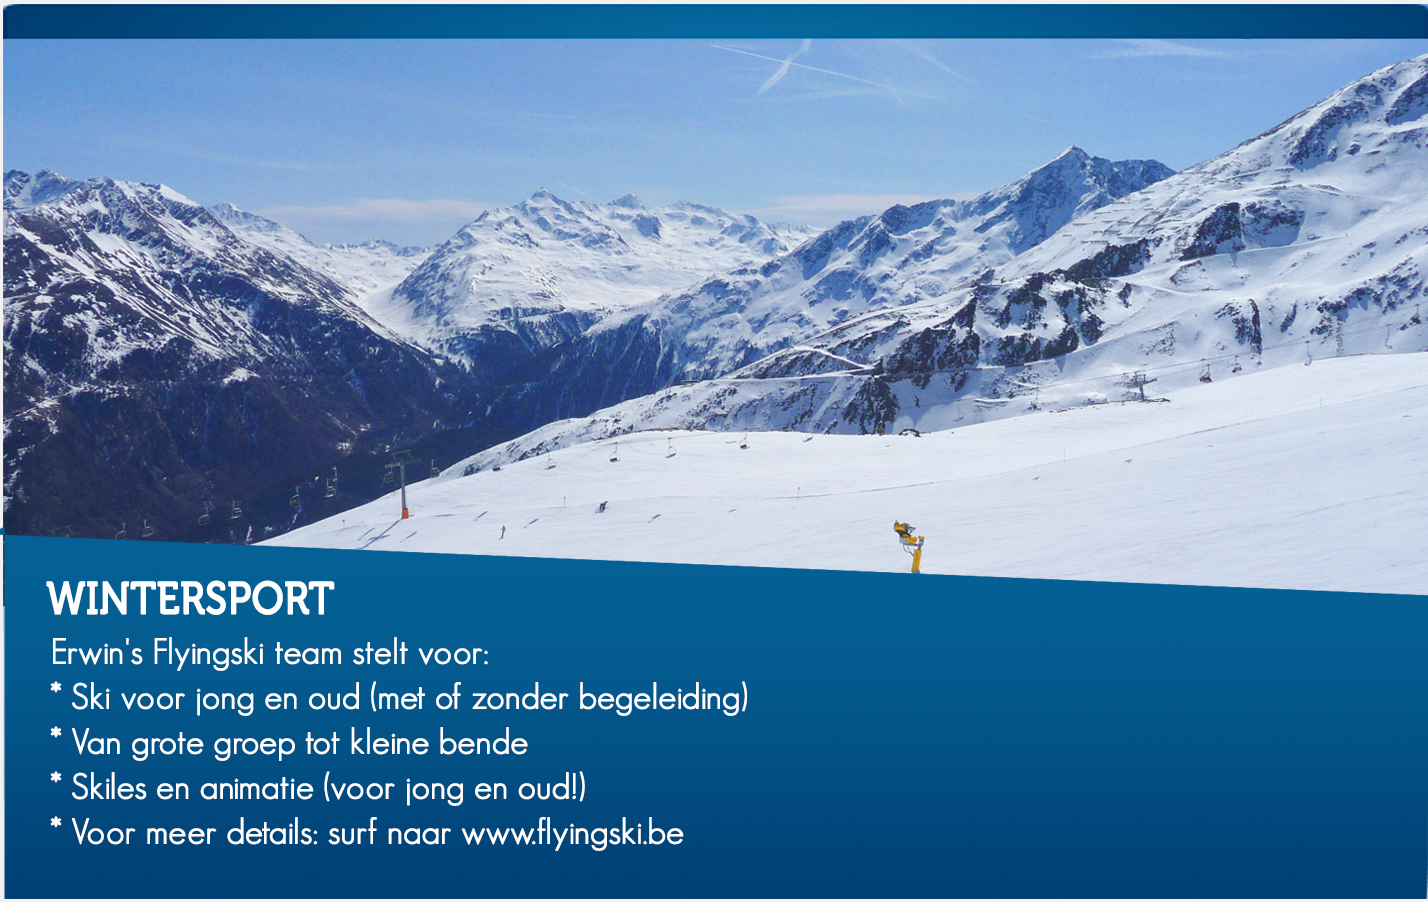 Wintersport Flyingski